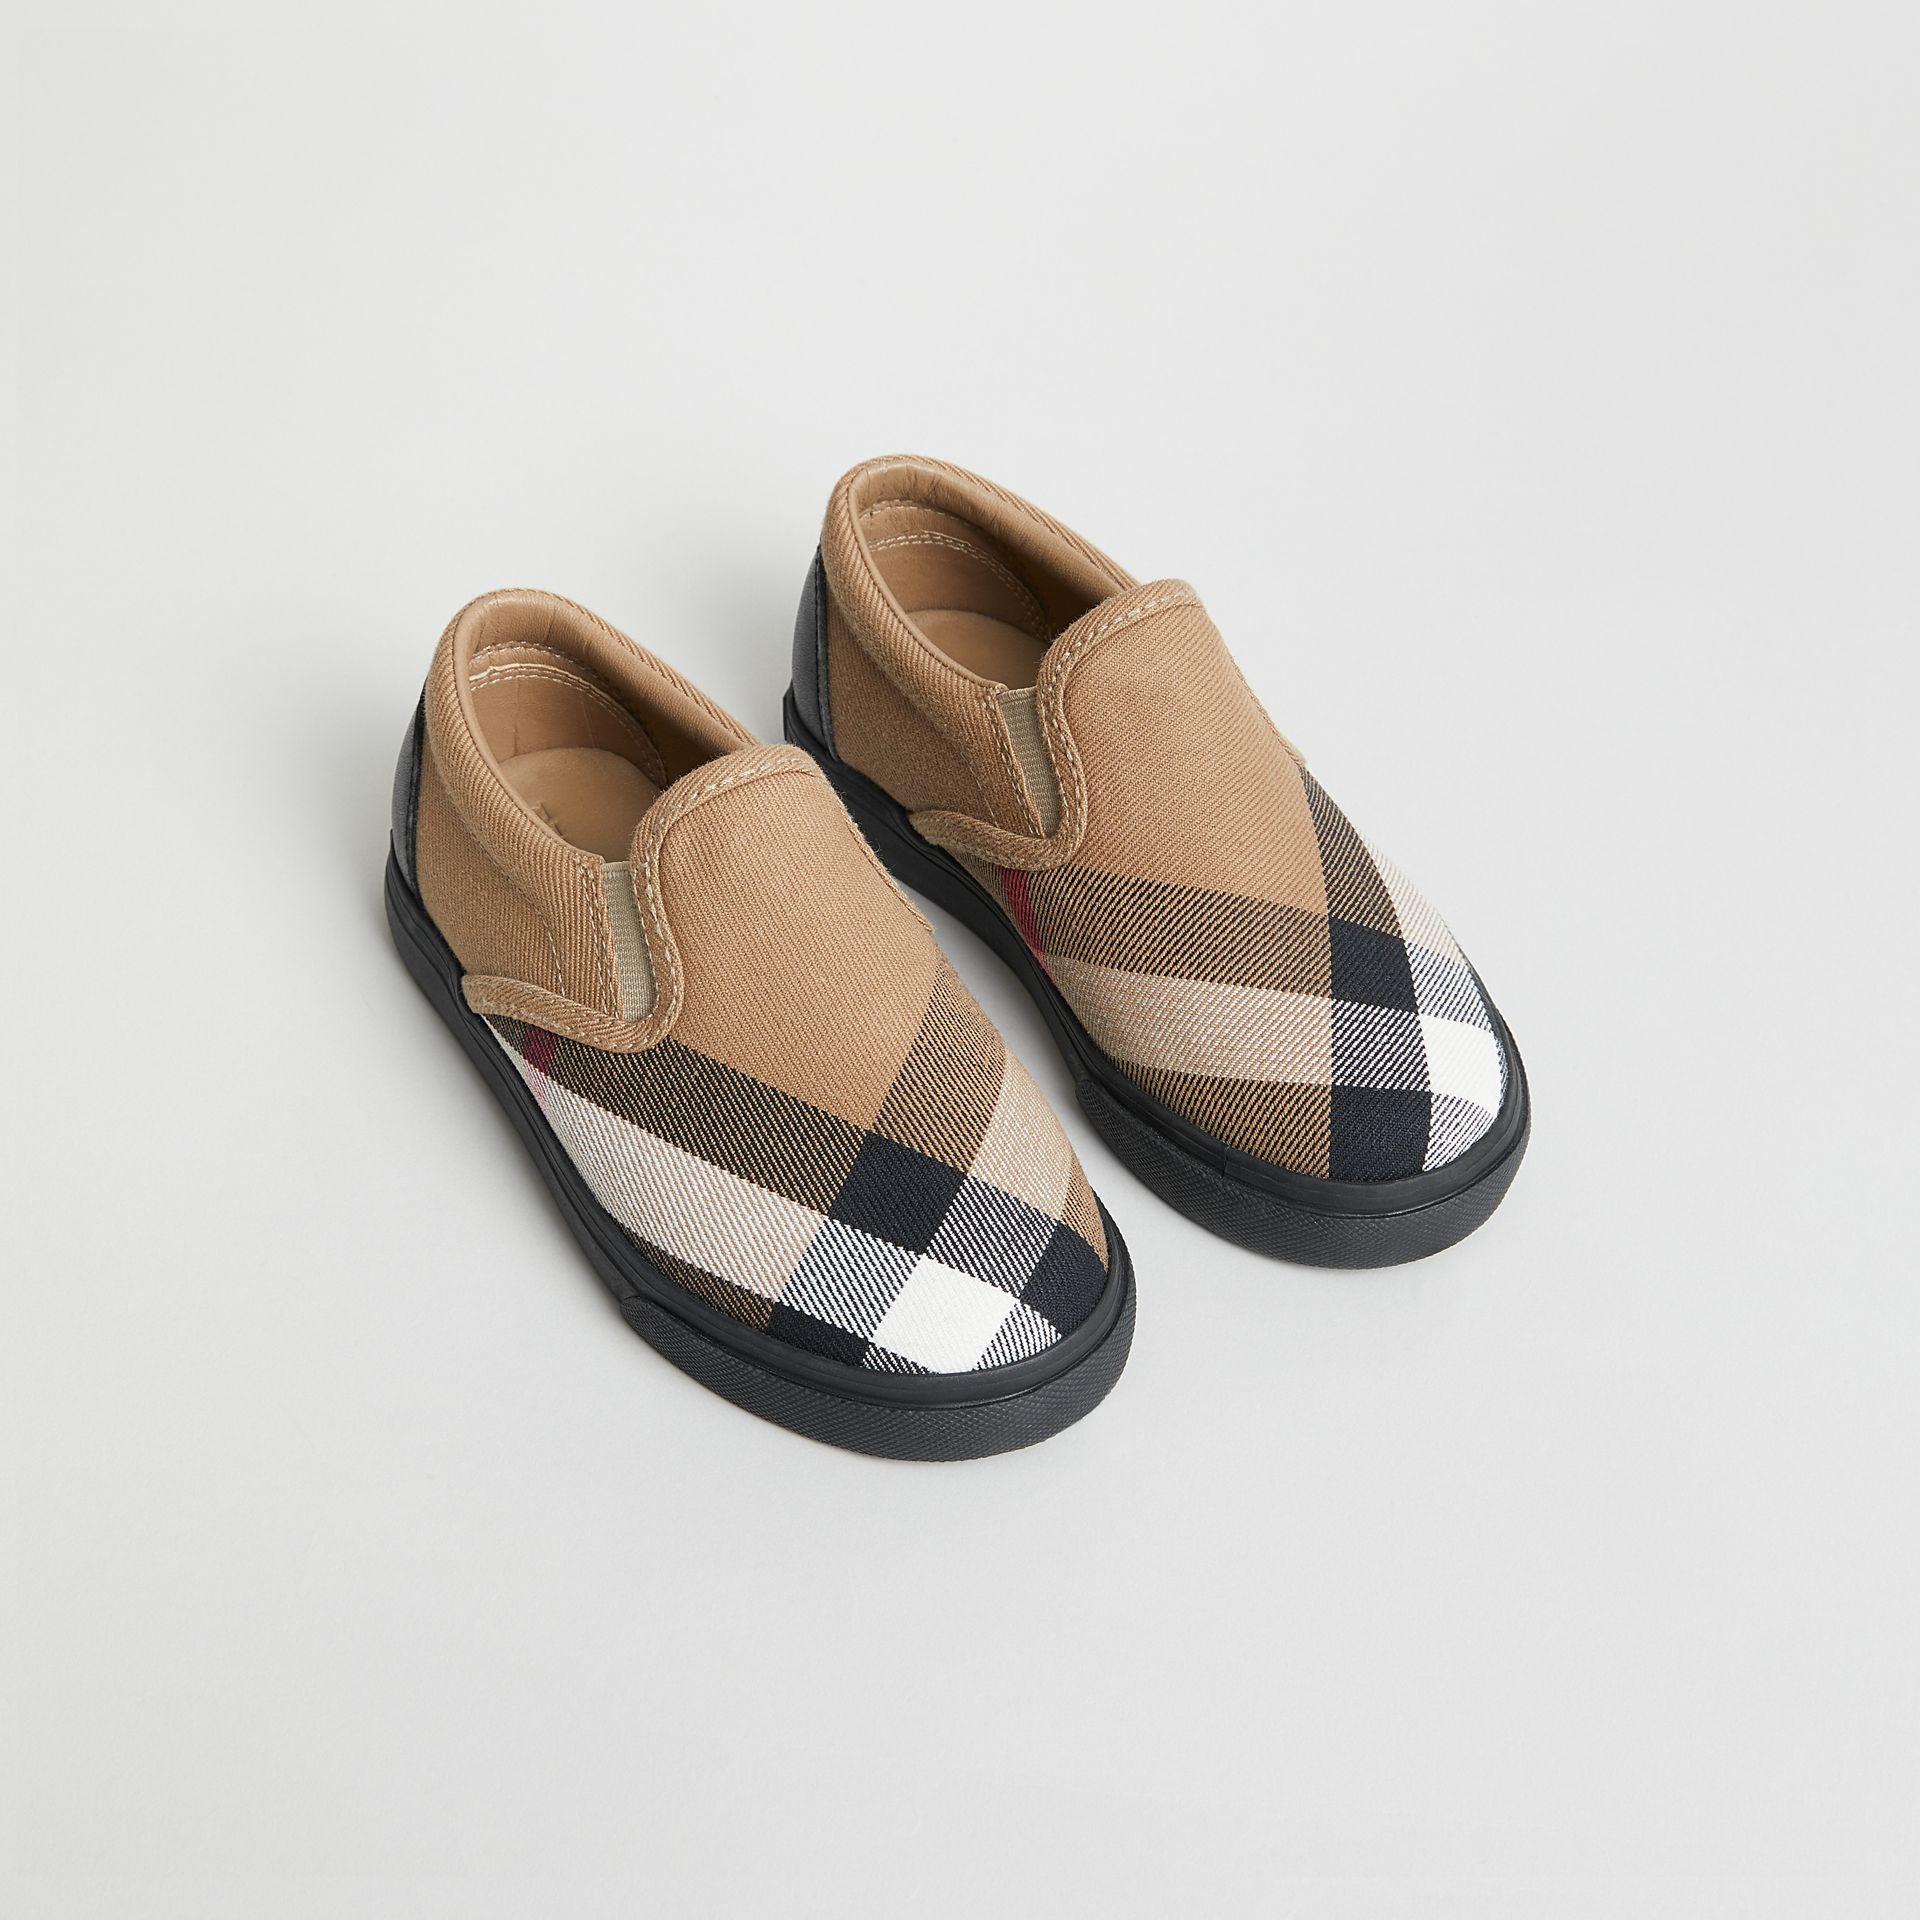 House Check and Leather Slip-on Sneakers in Classic/black | Burberry - gallery image 0